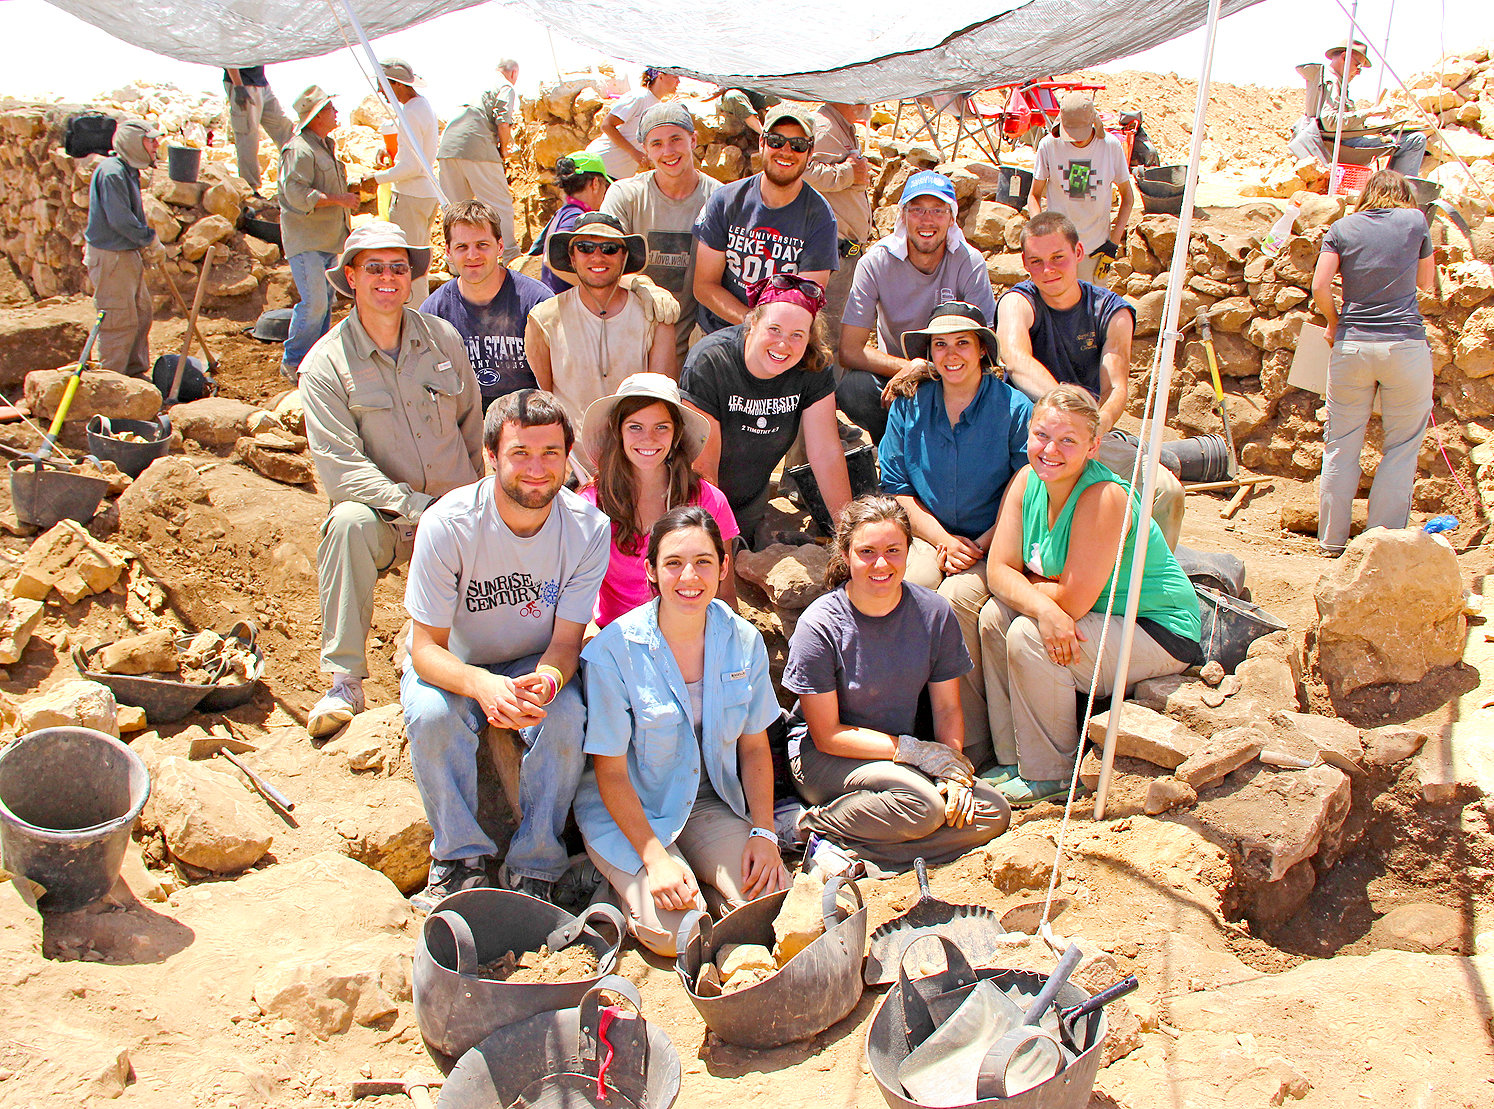 THESE LEE UNIVERSITY students went on a Global Perspectives trip in 2014, along with associate professor Dr. Brian Peterson, to search for Joshua's conquest of the city of Ai.